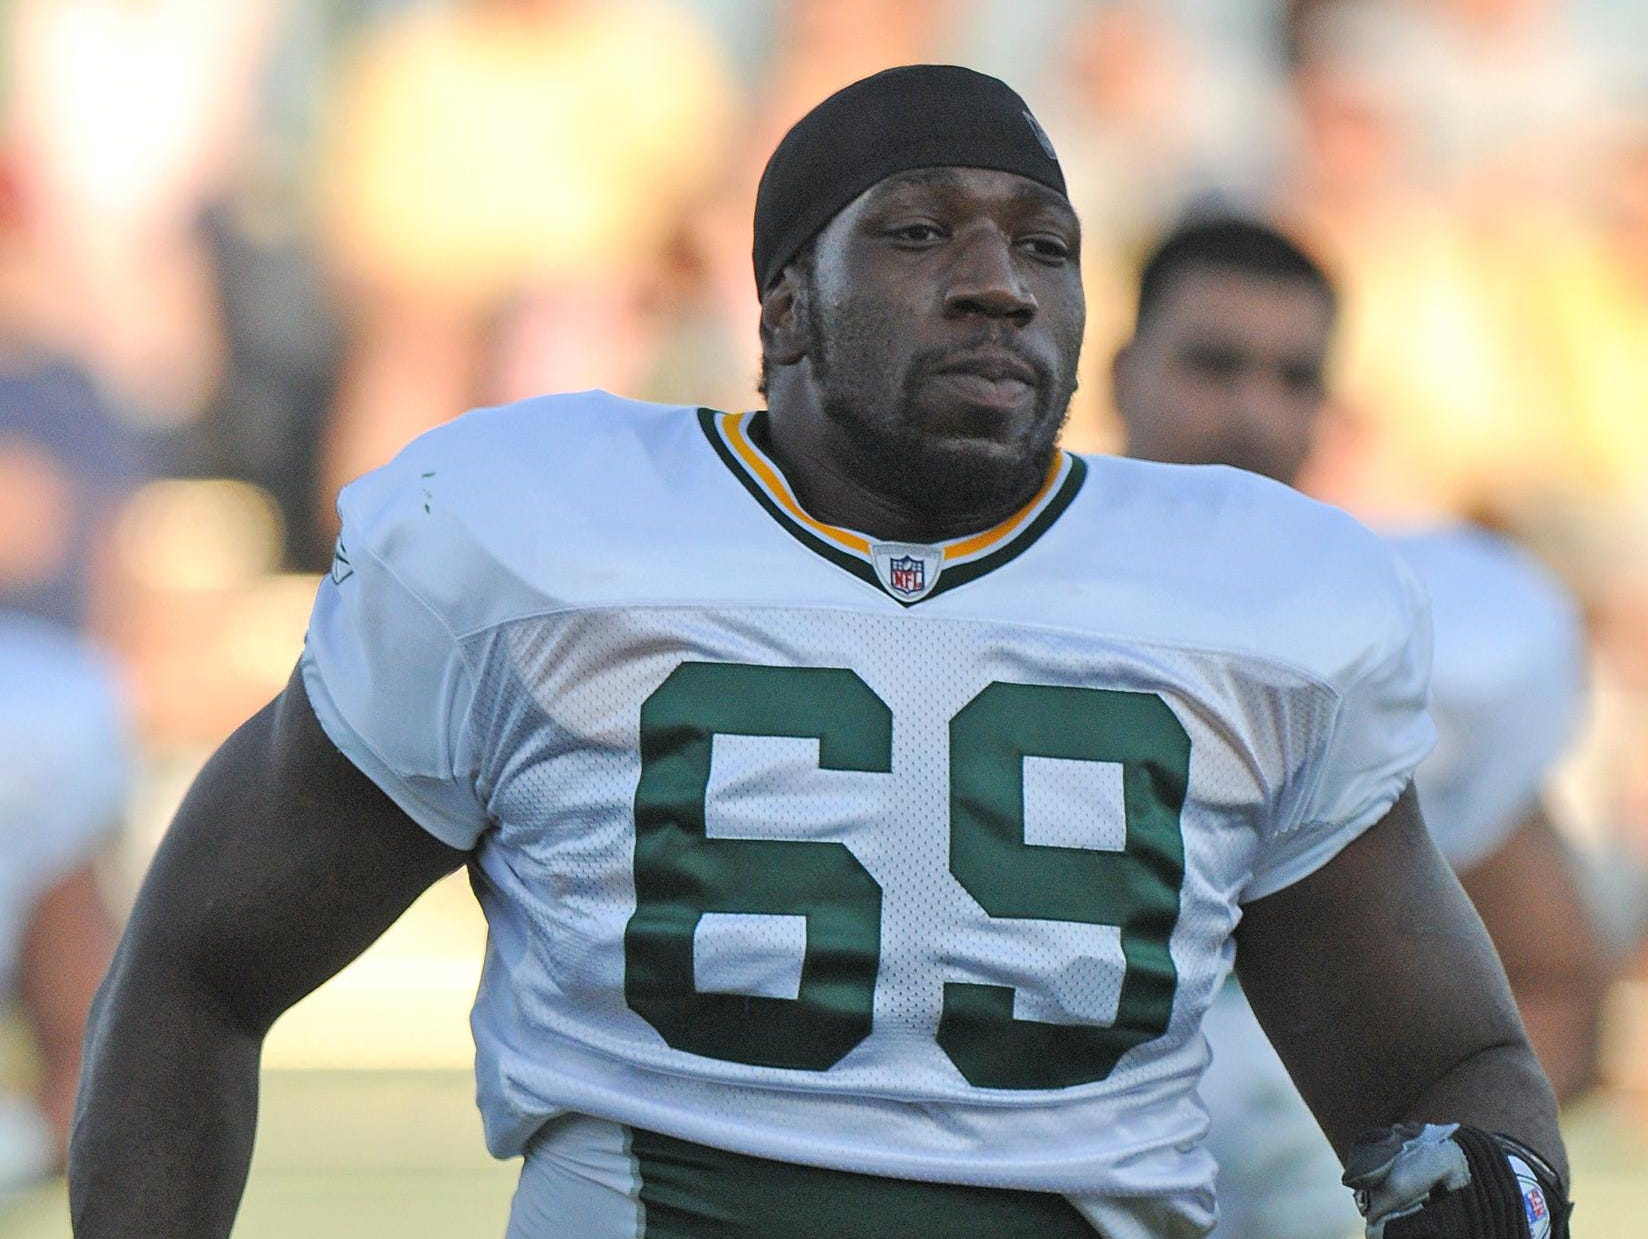 Former USC and Hillcrest High School standout Jamon Meredith is holding an offensive line camp on Saturday.